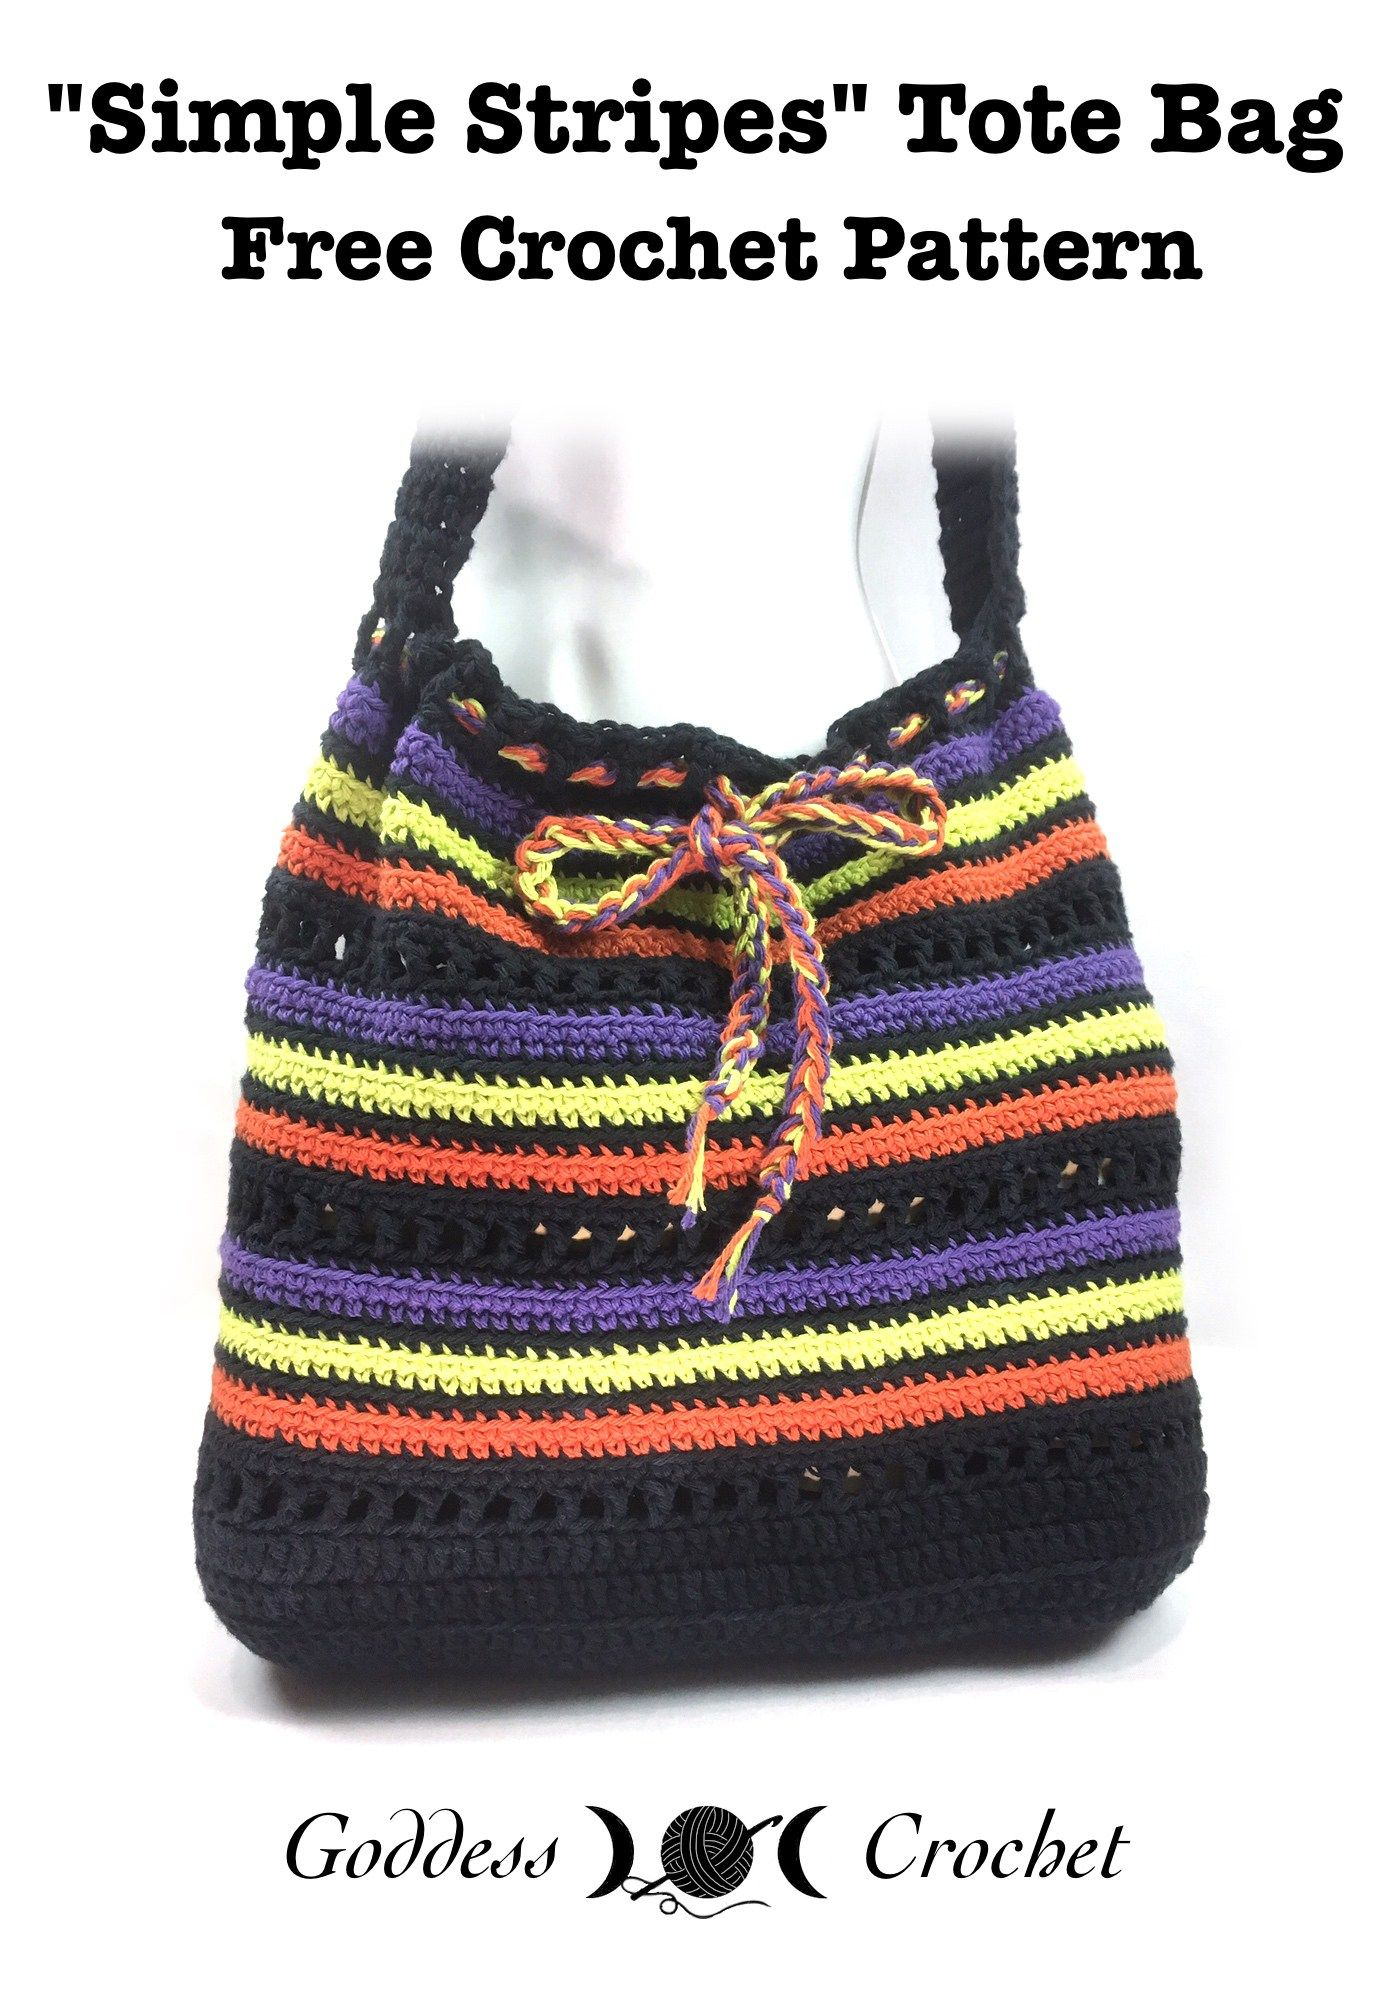 Simple Stripes Tote Bag - Free Crochet Pattern | Blogger Crochet ...